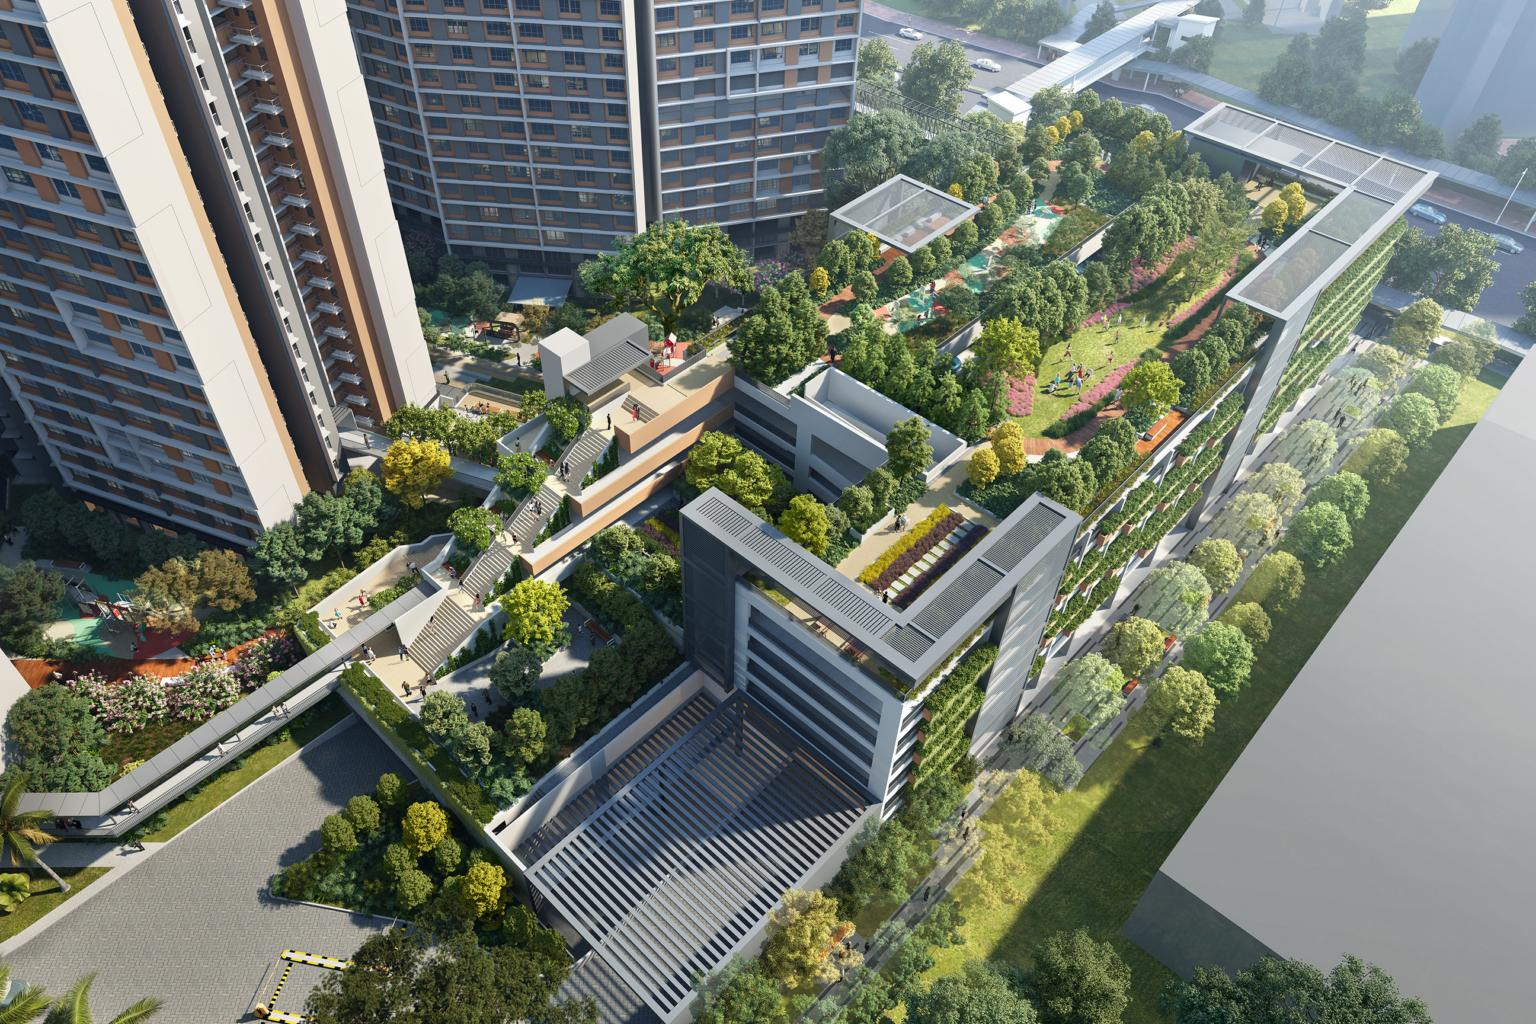 Queenstown to be Singapore's first health district with senior-friendly design, community programmes